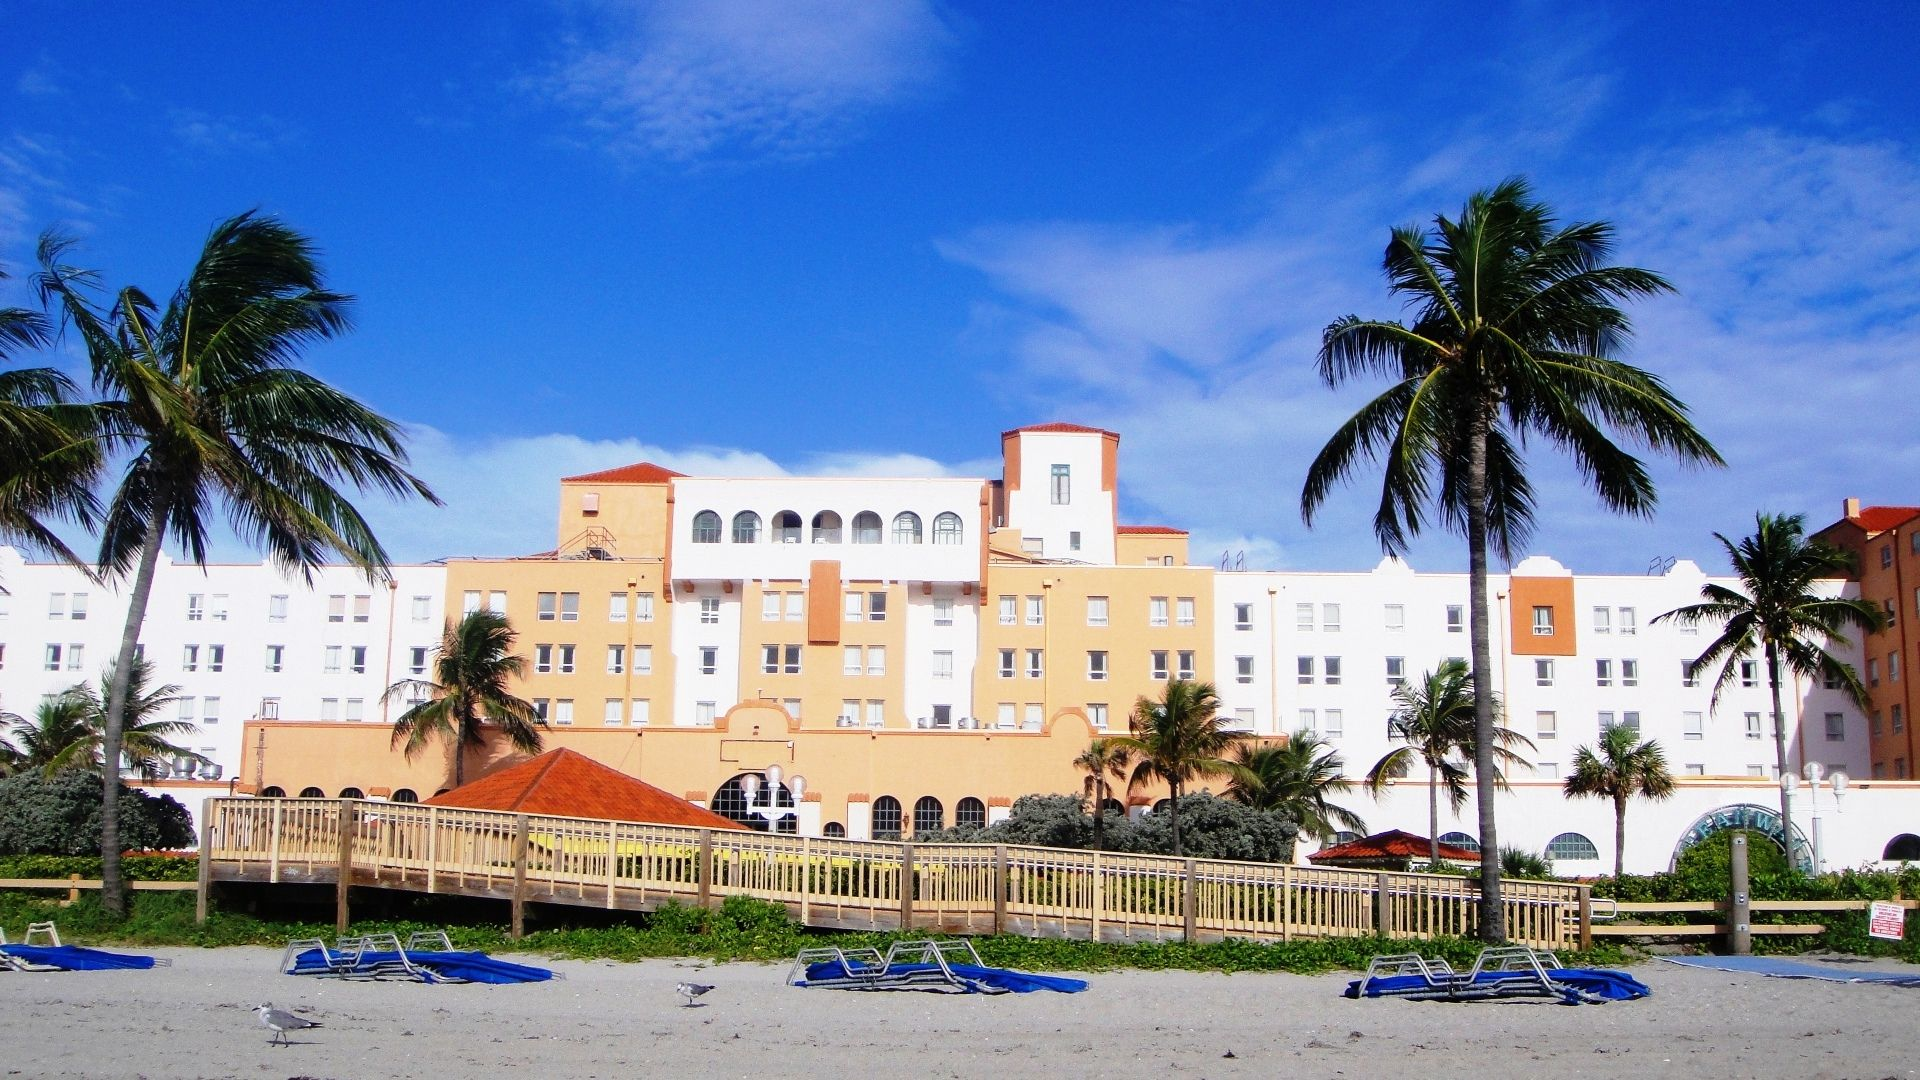 Hollywood Beach Resort Cruise Port Hotel Oceanfront Timeshare Promotion